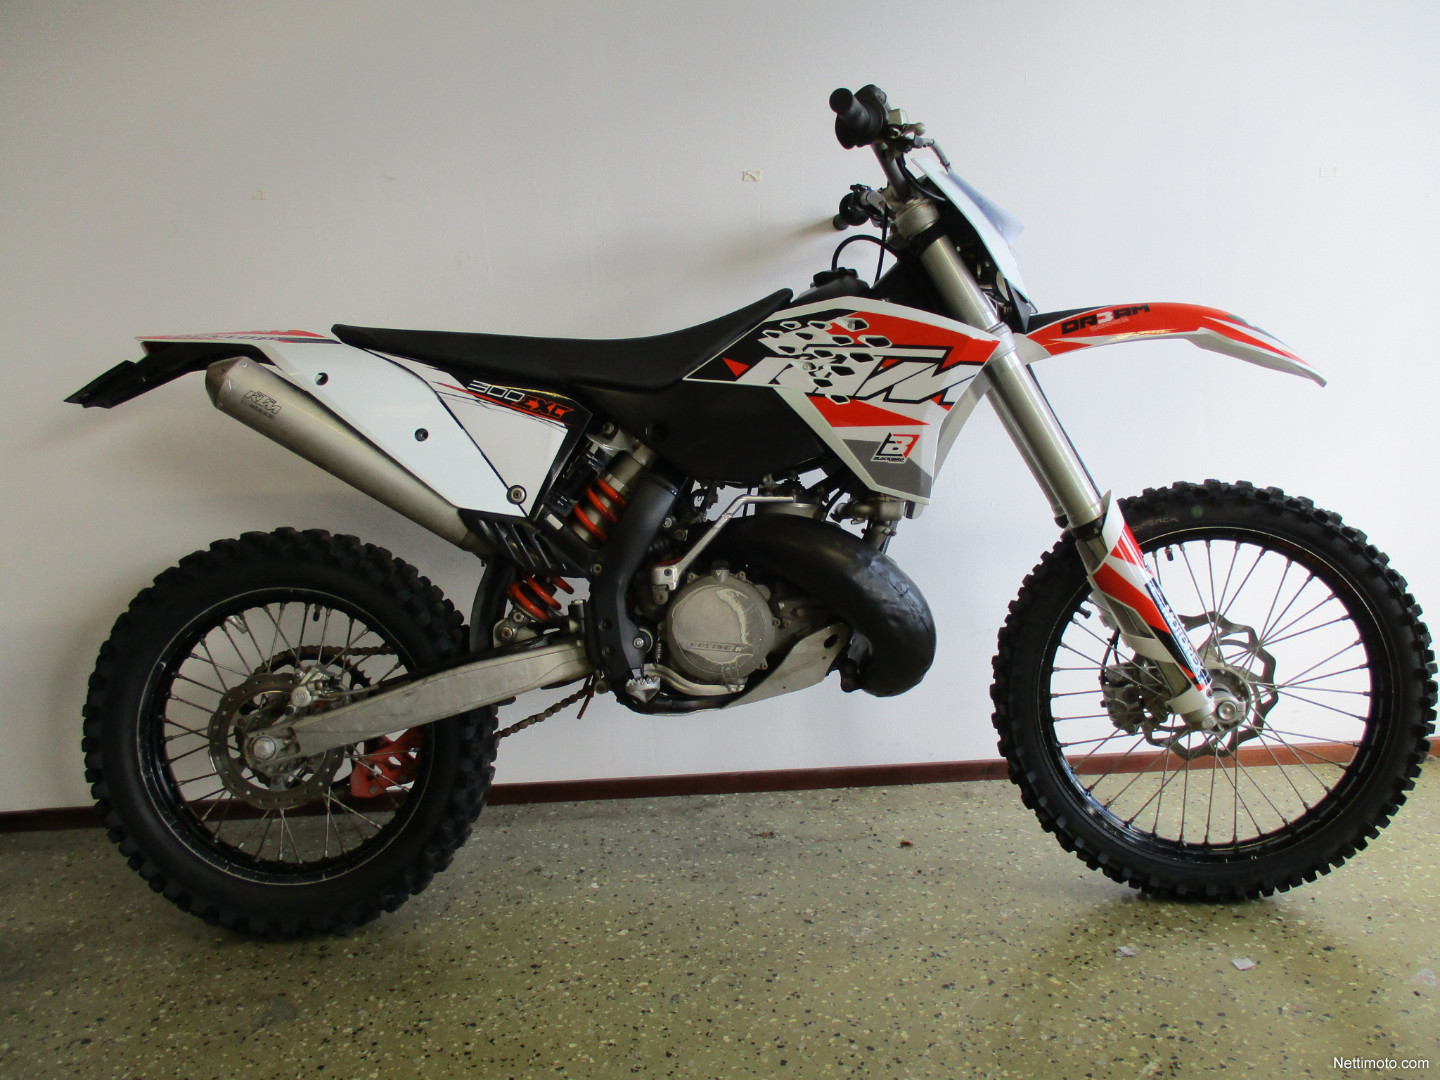 exc review jpg 1440x1080 1996 ktm 300 exc review